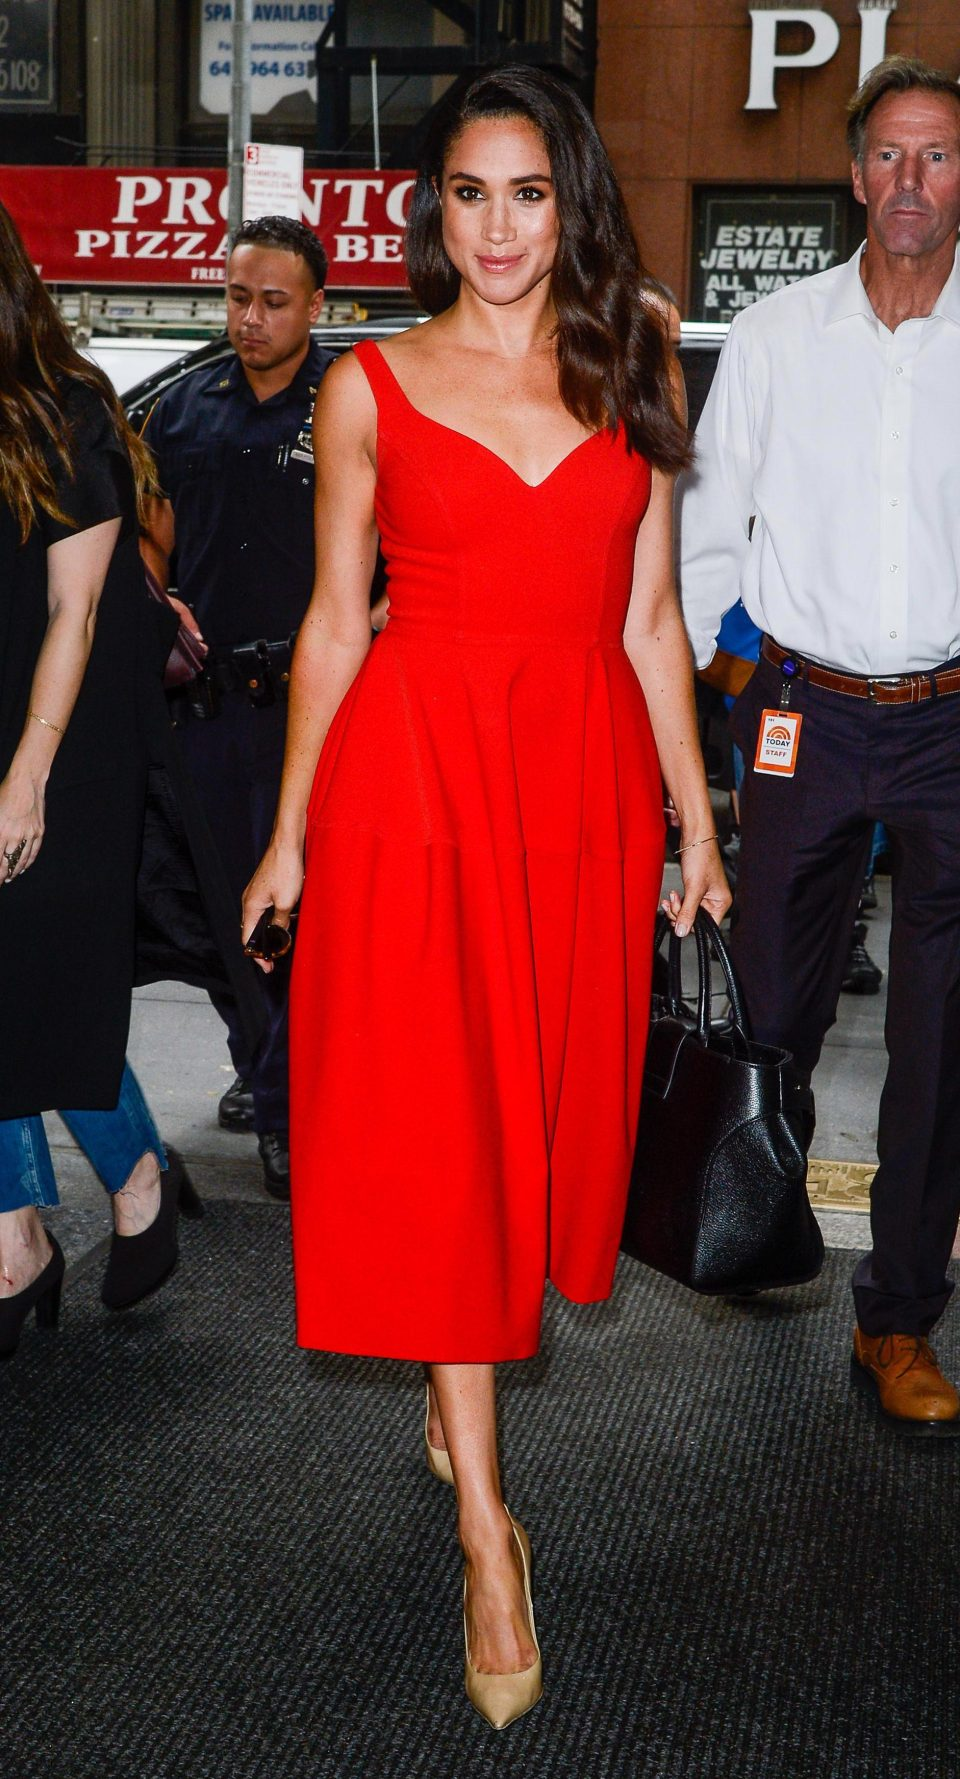 Since getting serious with Harry, Meghan has been spotted in more conservative looks